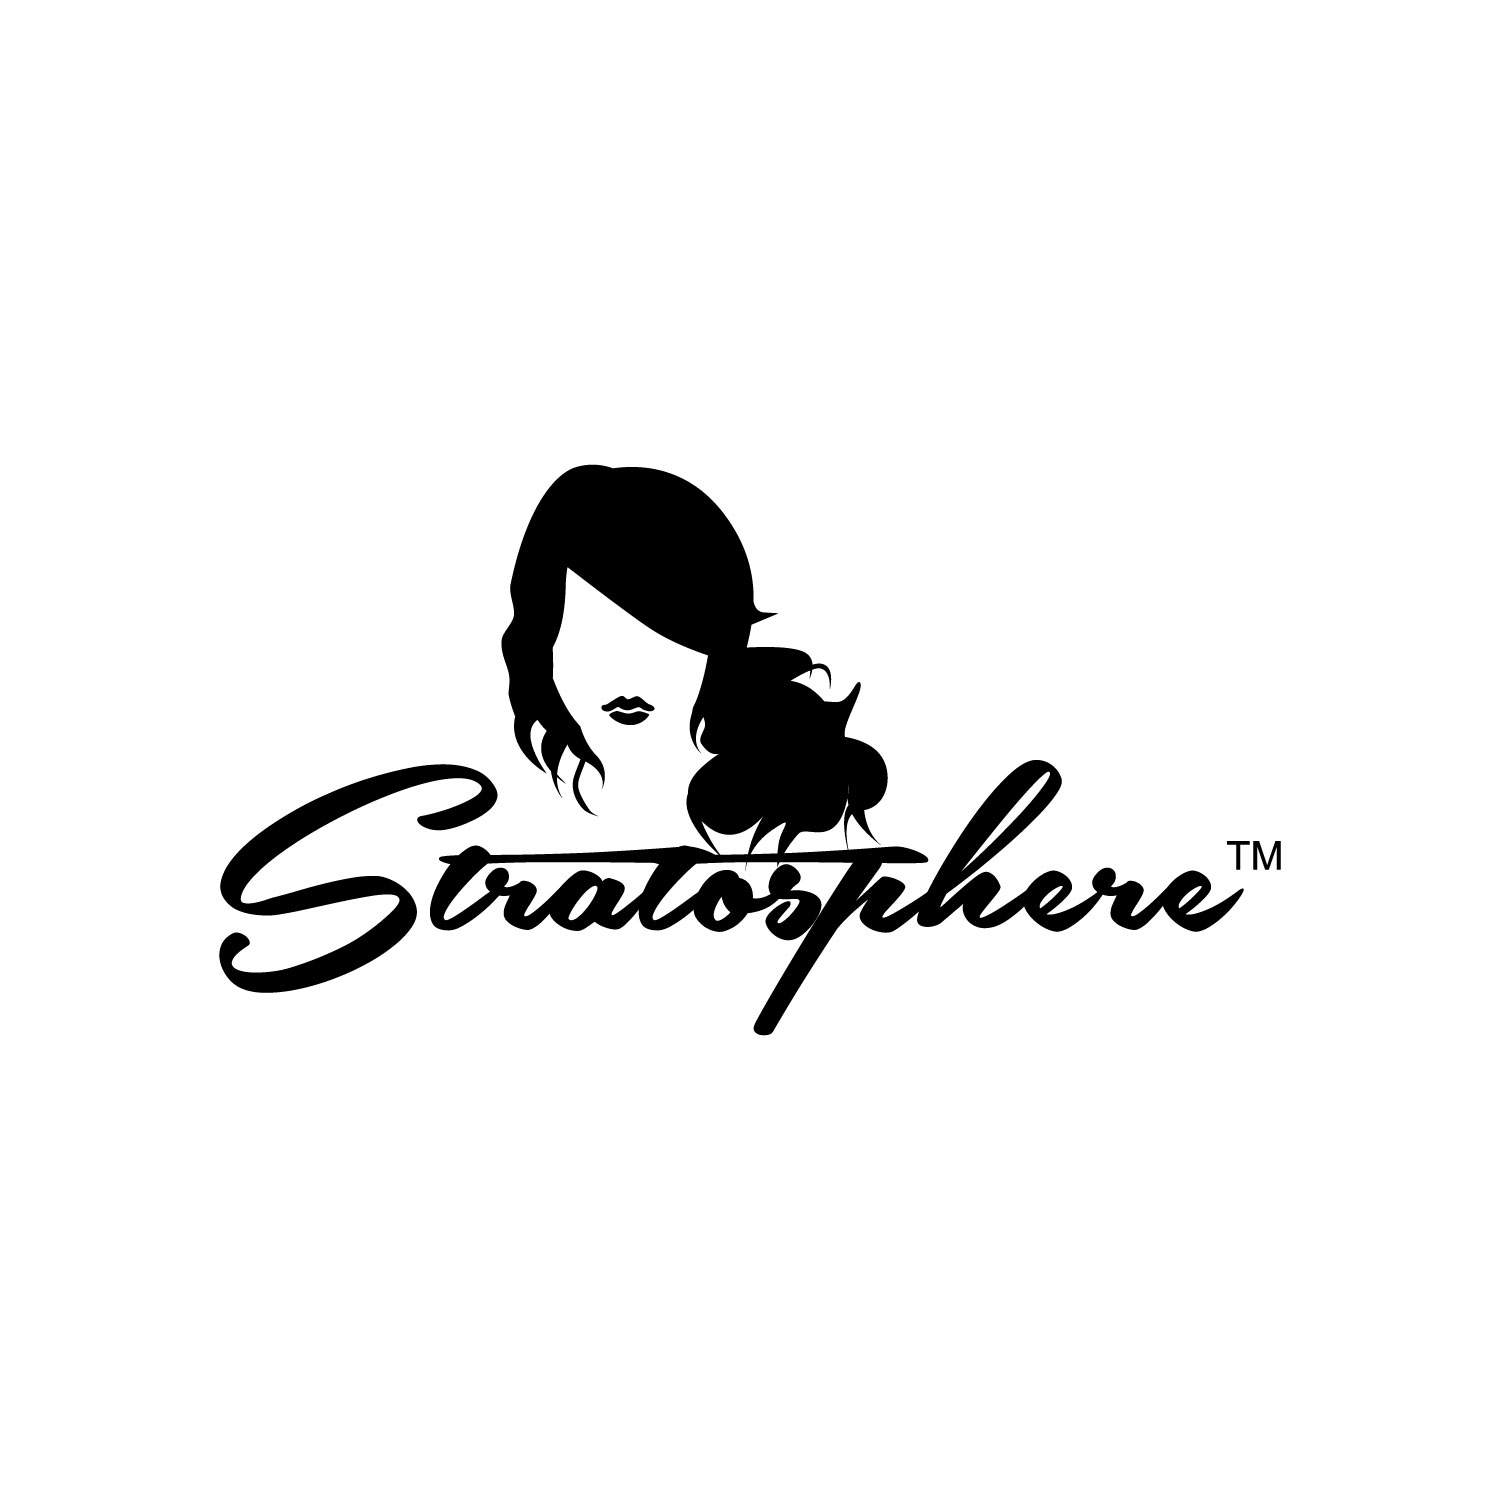 Logo Design by lagalag - Entry No. 40 in the Logo Design Contest Captivating Logo Design for Stratosphere.